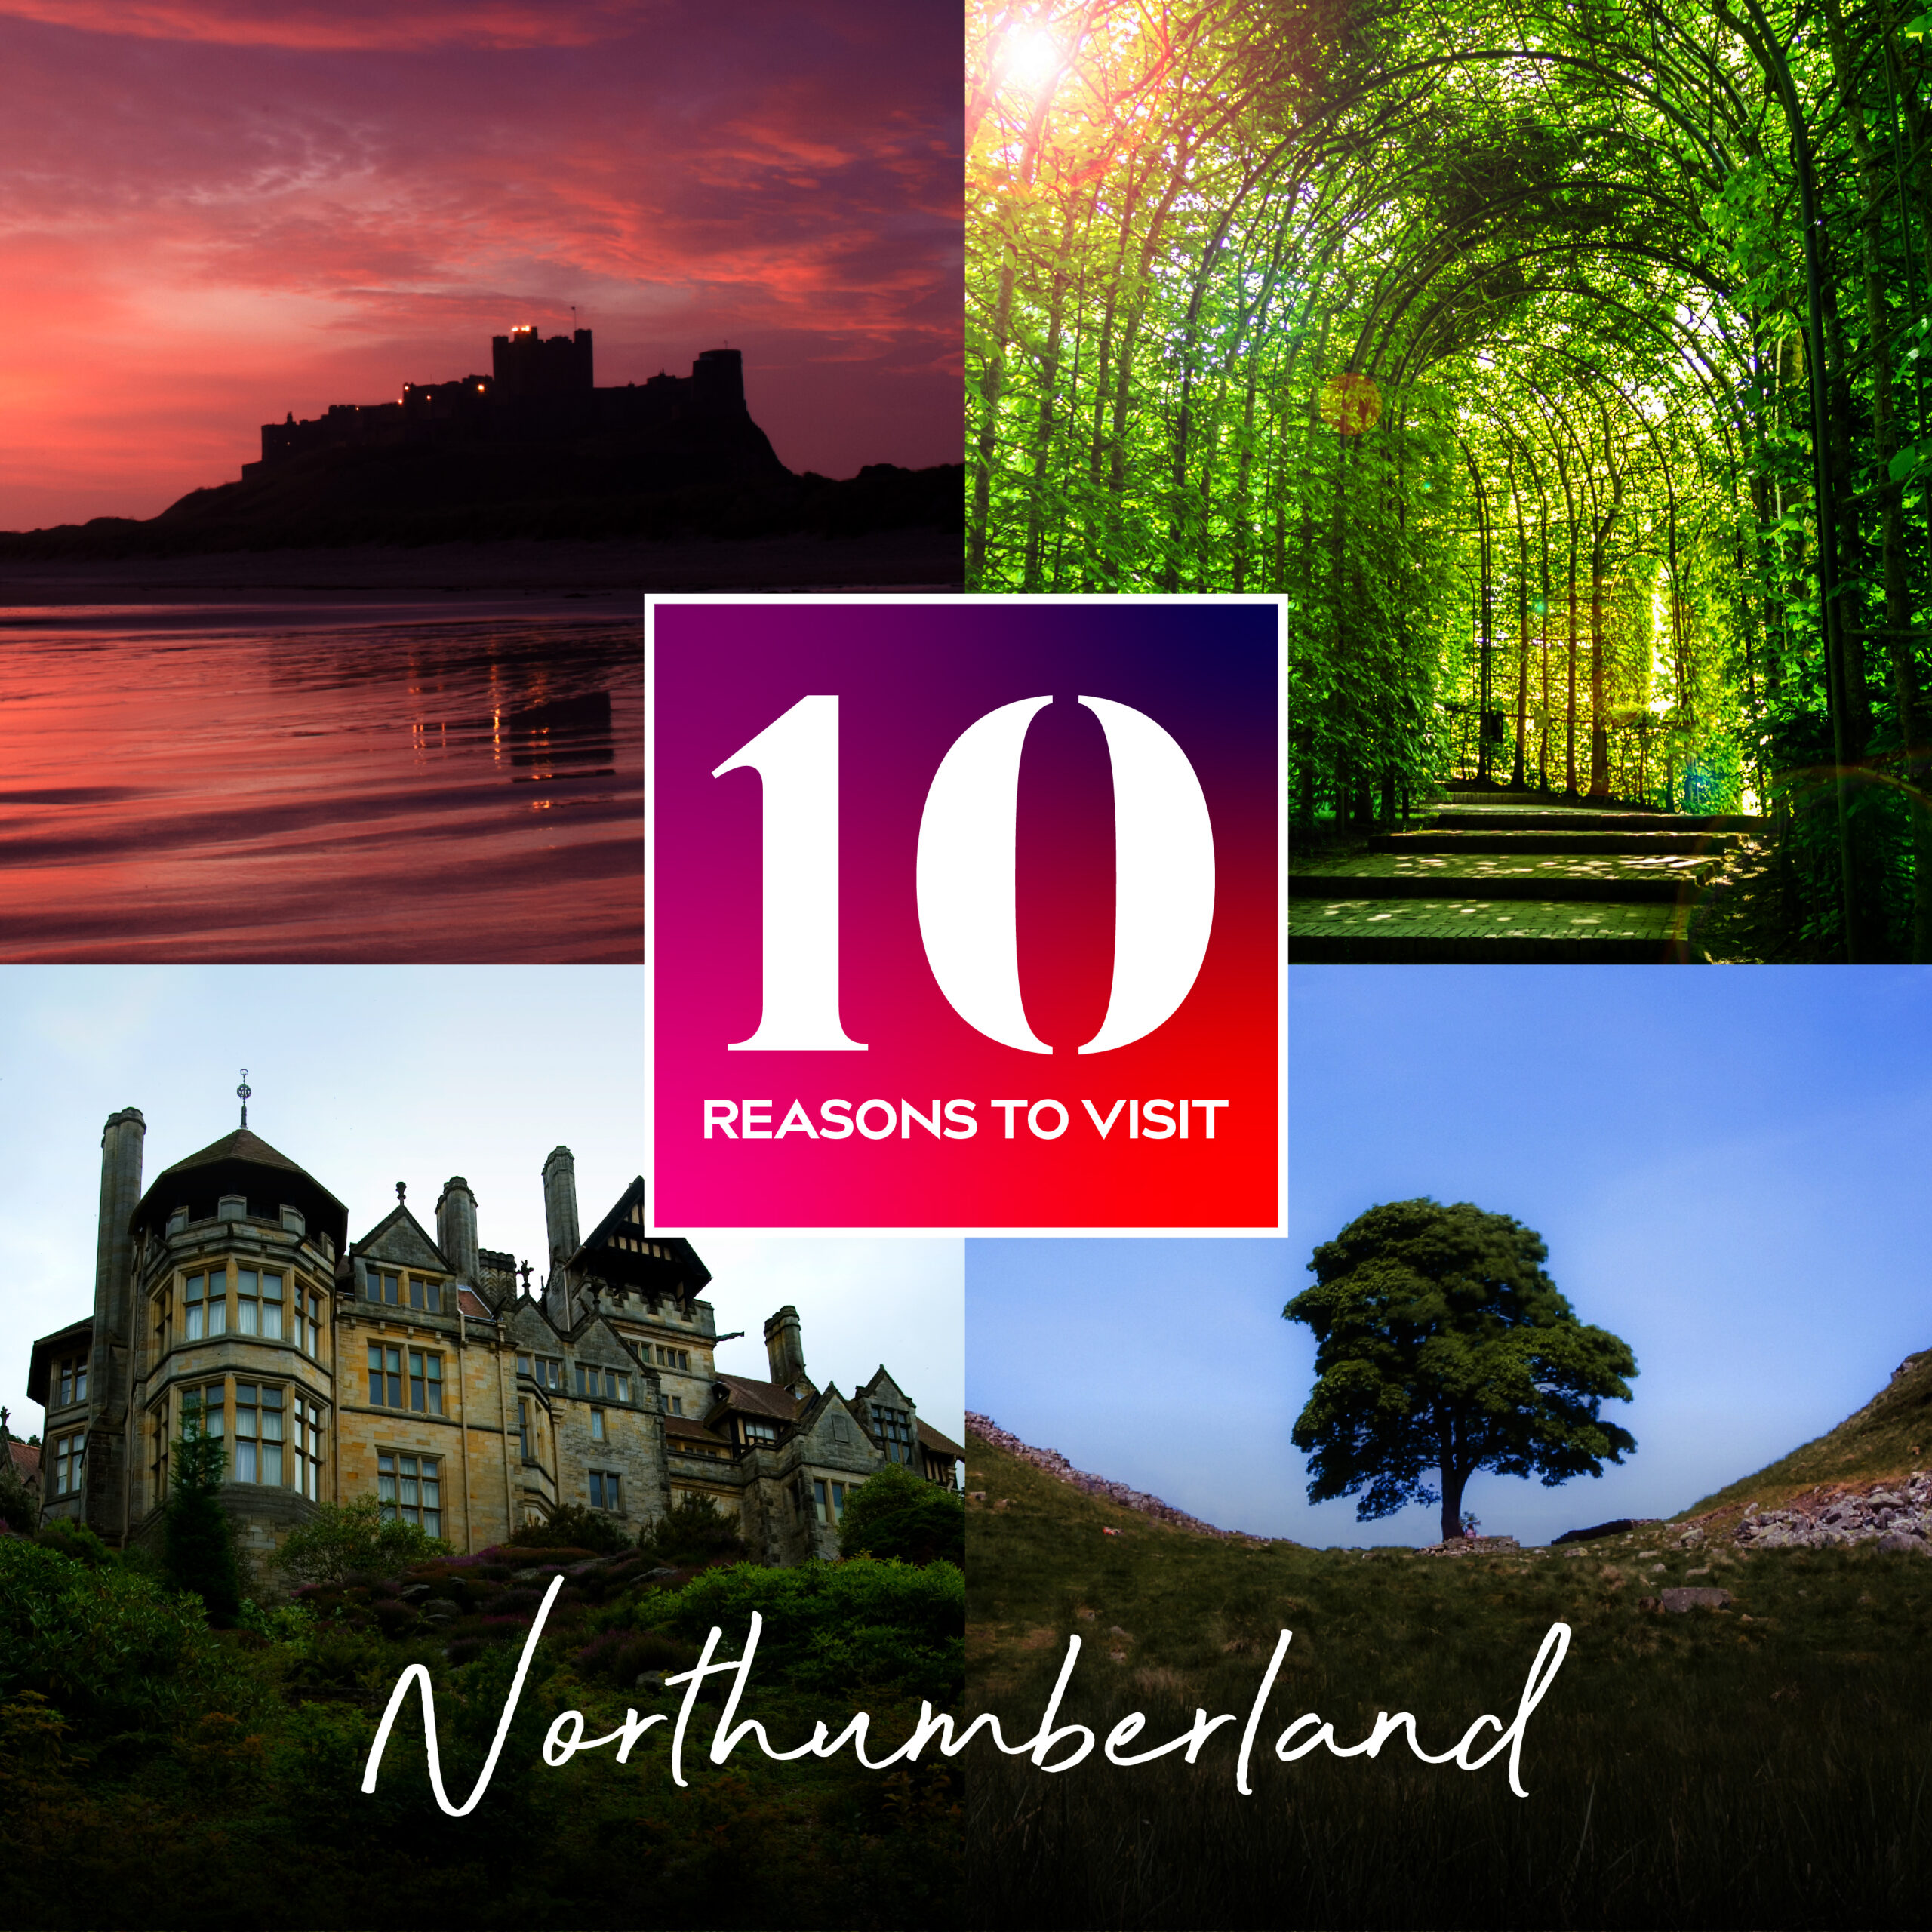 10 Reasons Why Northumberland Should Be On Your Staycation List in 2021